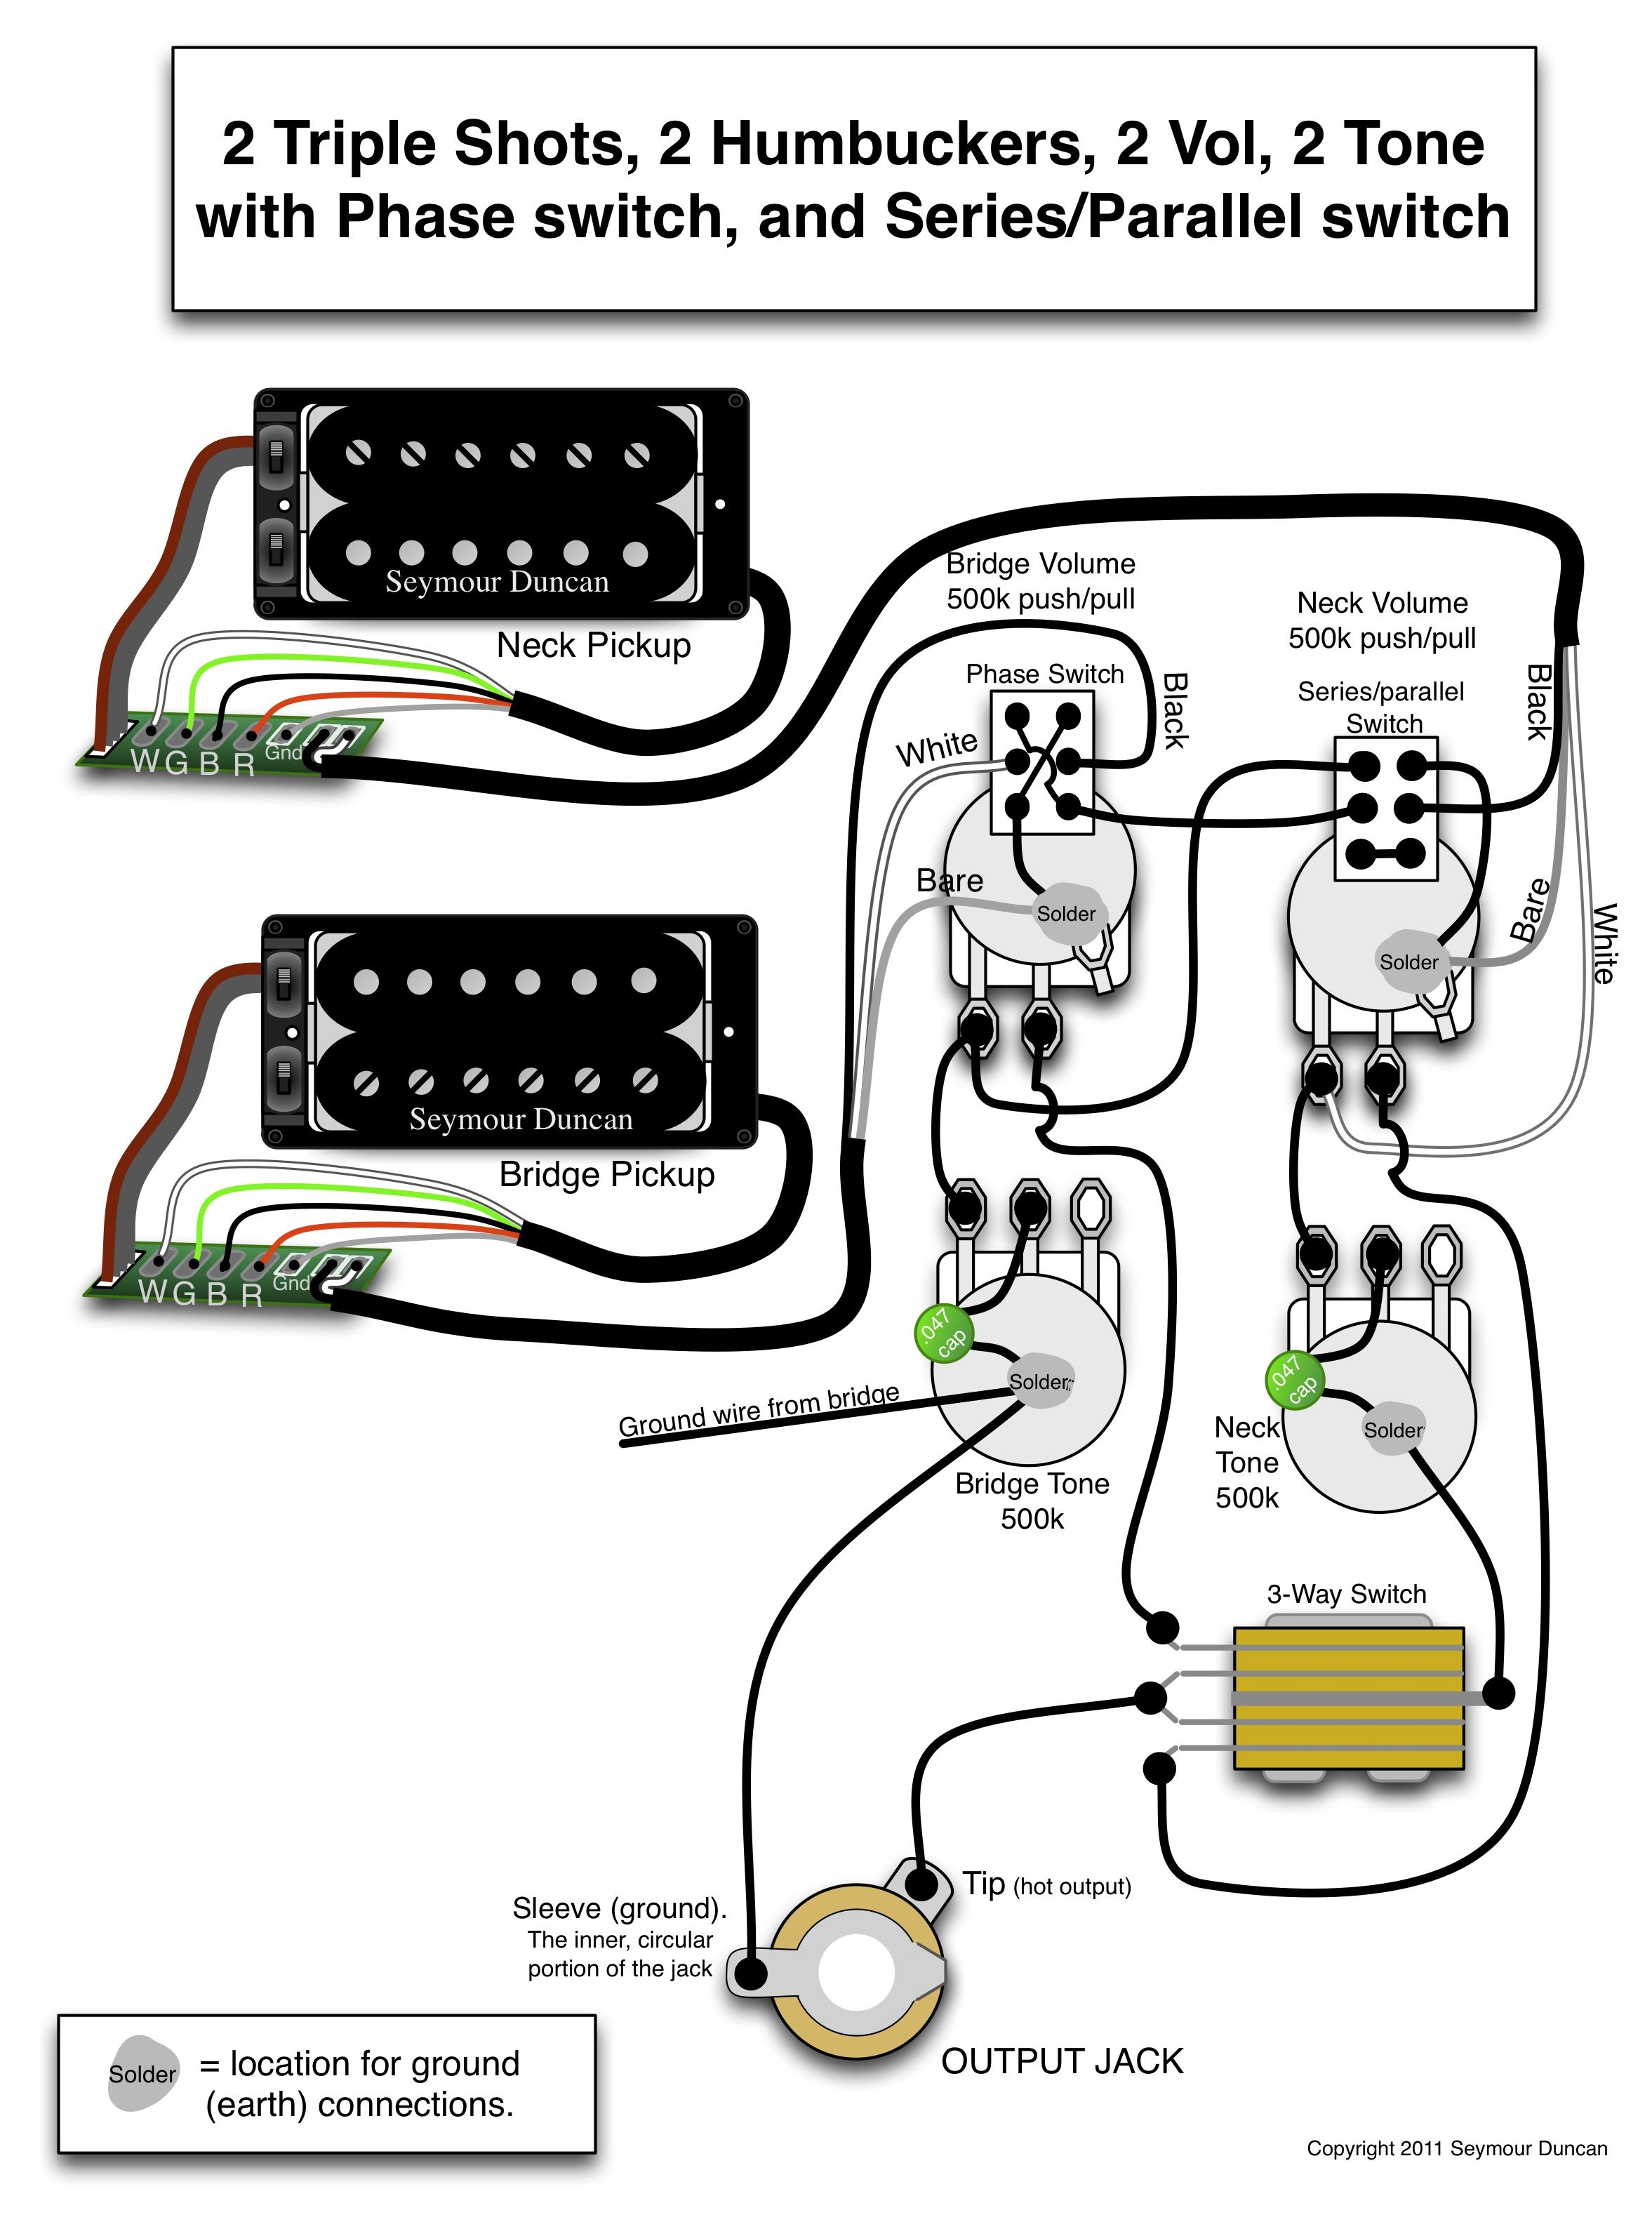 les paul wiring diagram coil tap partsam led trailer lights seymour duncan 2 triple shots